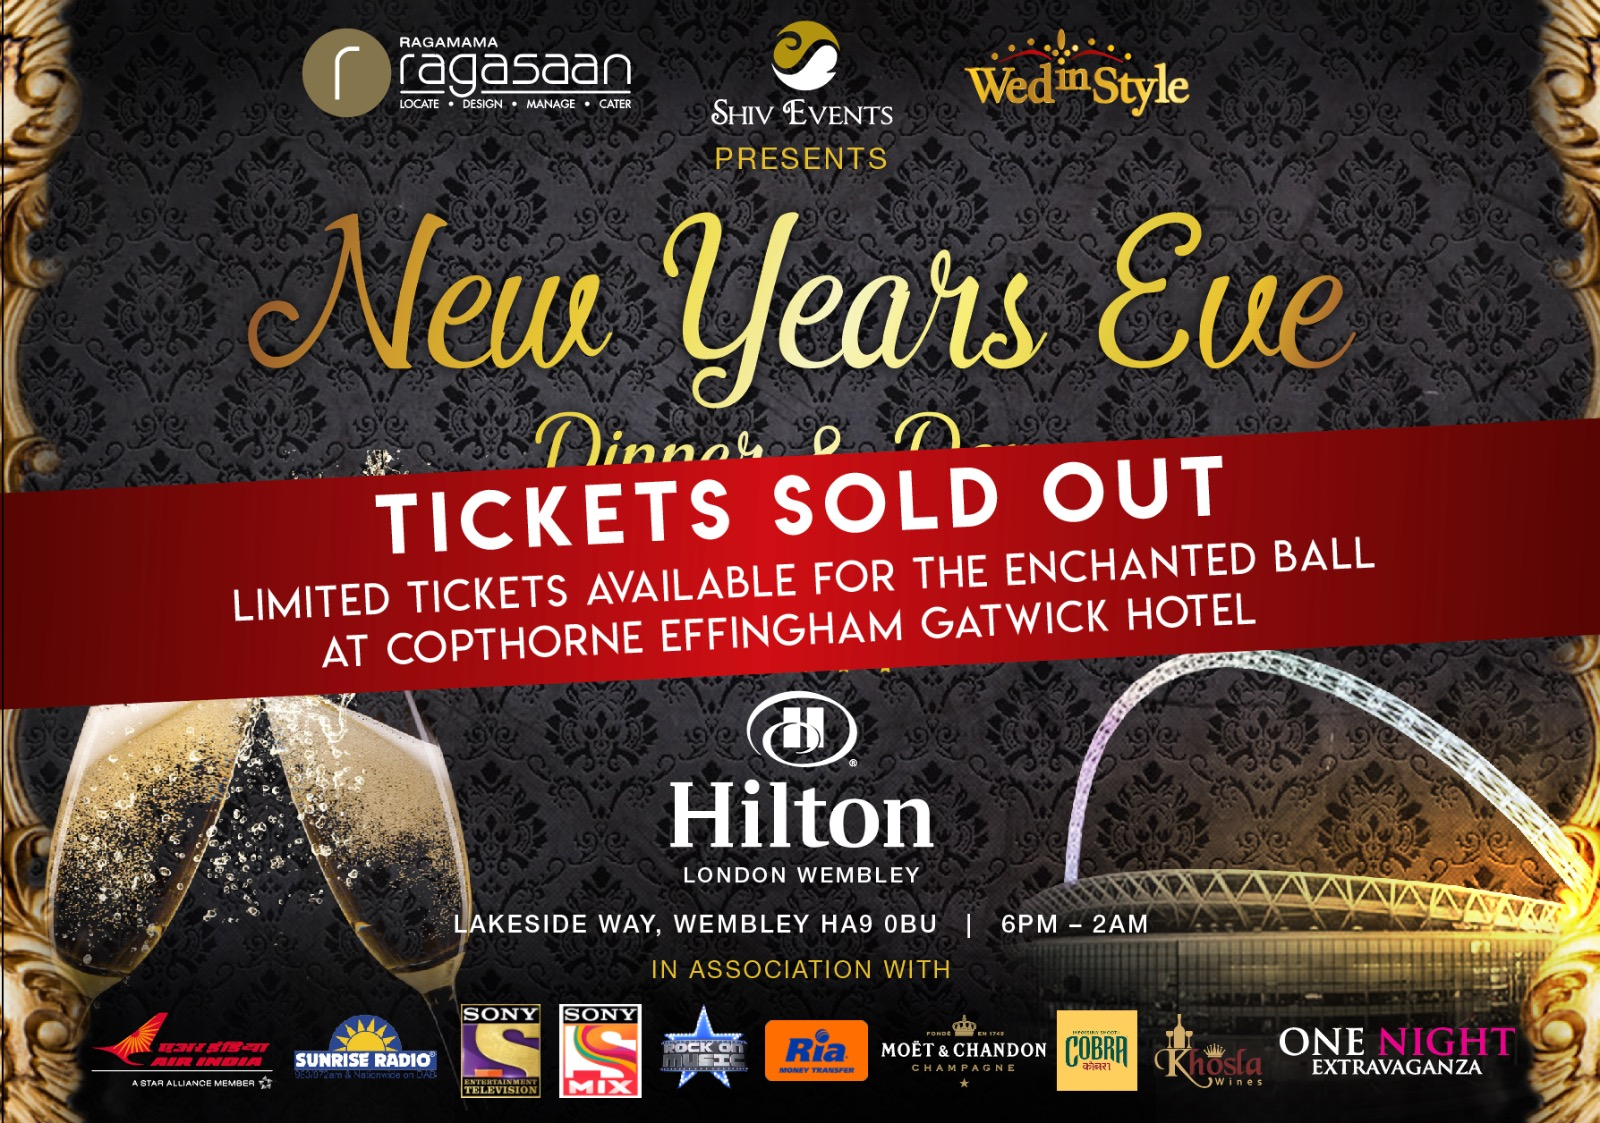 FOR NYE 31.12.2018 EVENTS GO TO THE FOLLOWING LINKhttp://www.shivevents.co.uk/events/ ————– New Years Eve 2017 – Dinner and Dance – Hilton Wembley Hotel